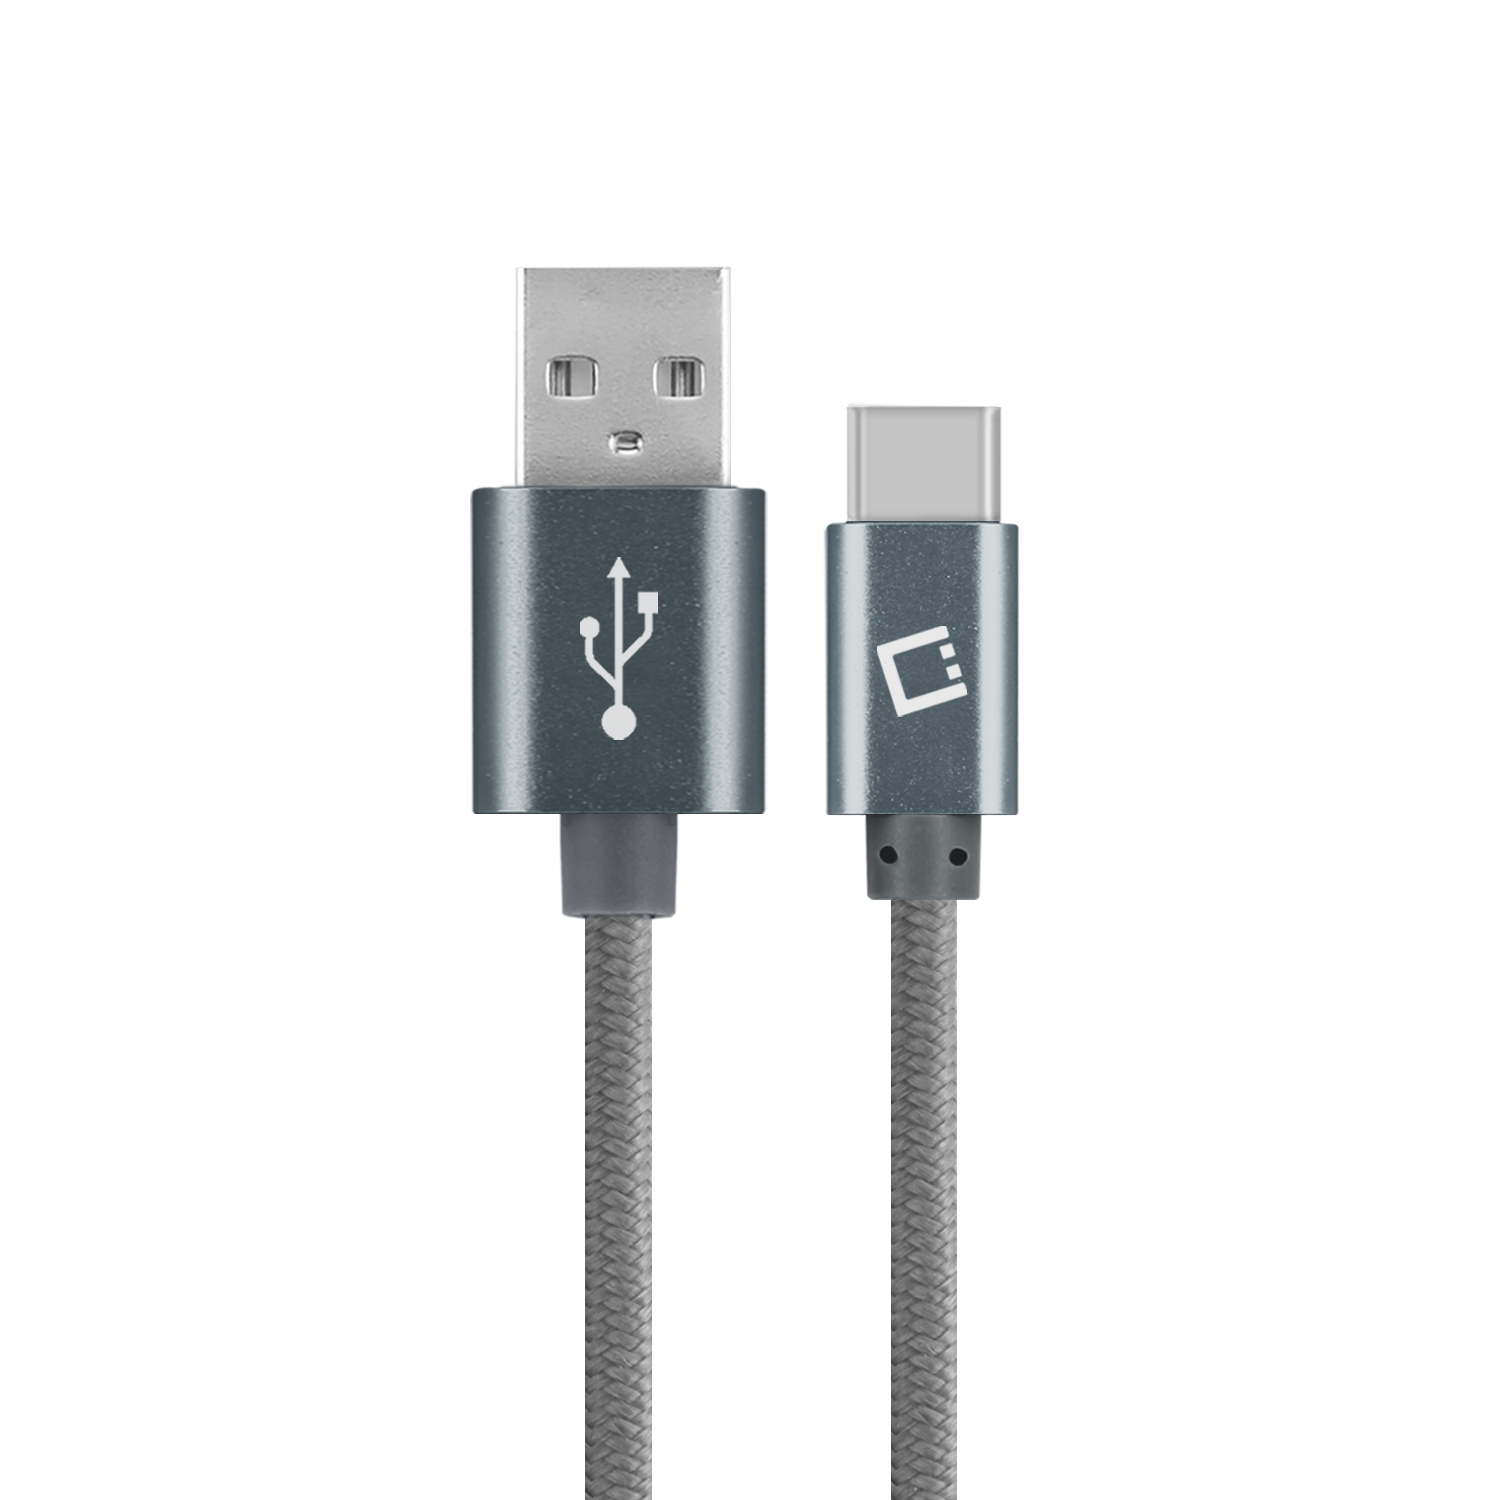 Blackberry KEYone USB Type-C To Type-A Braided Data Power Cable Grey 4ft Braided